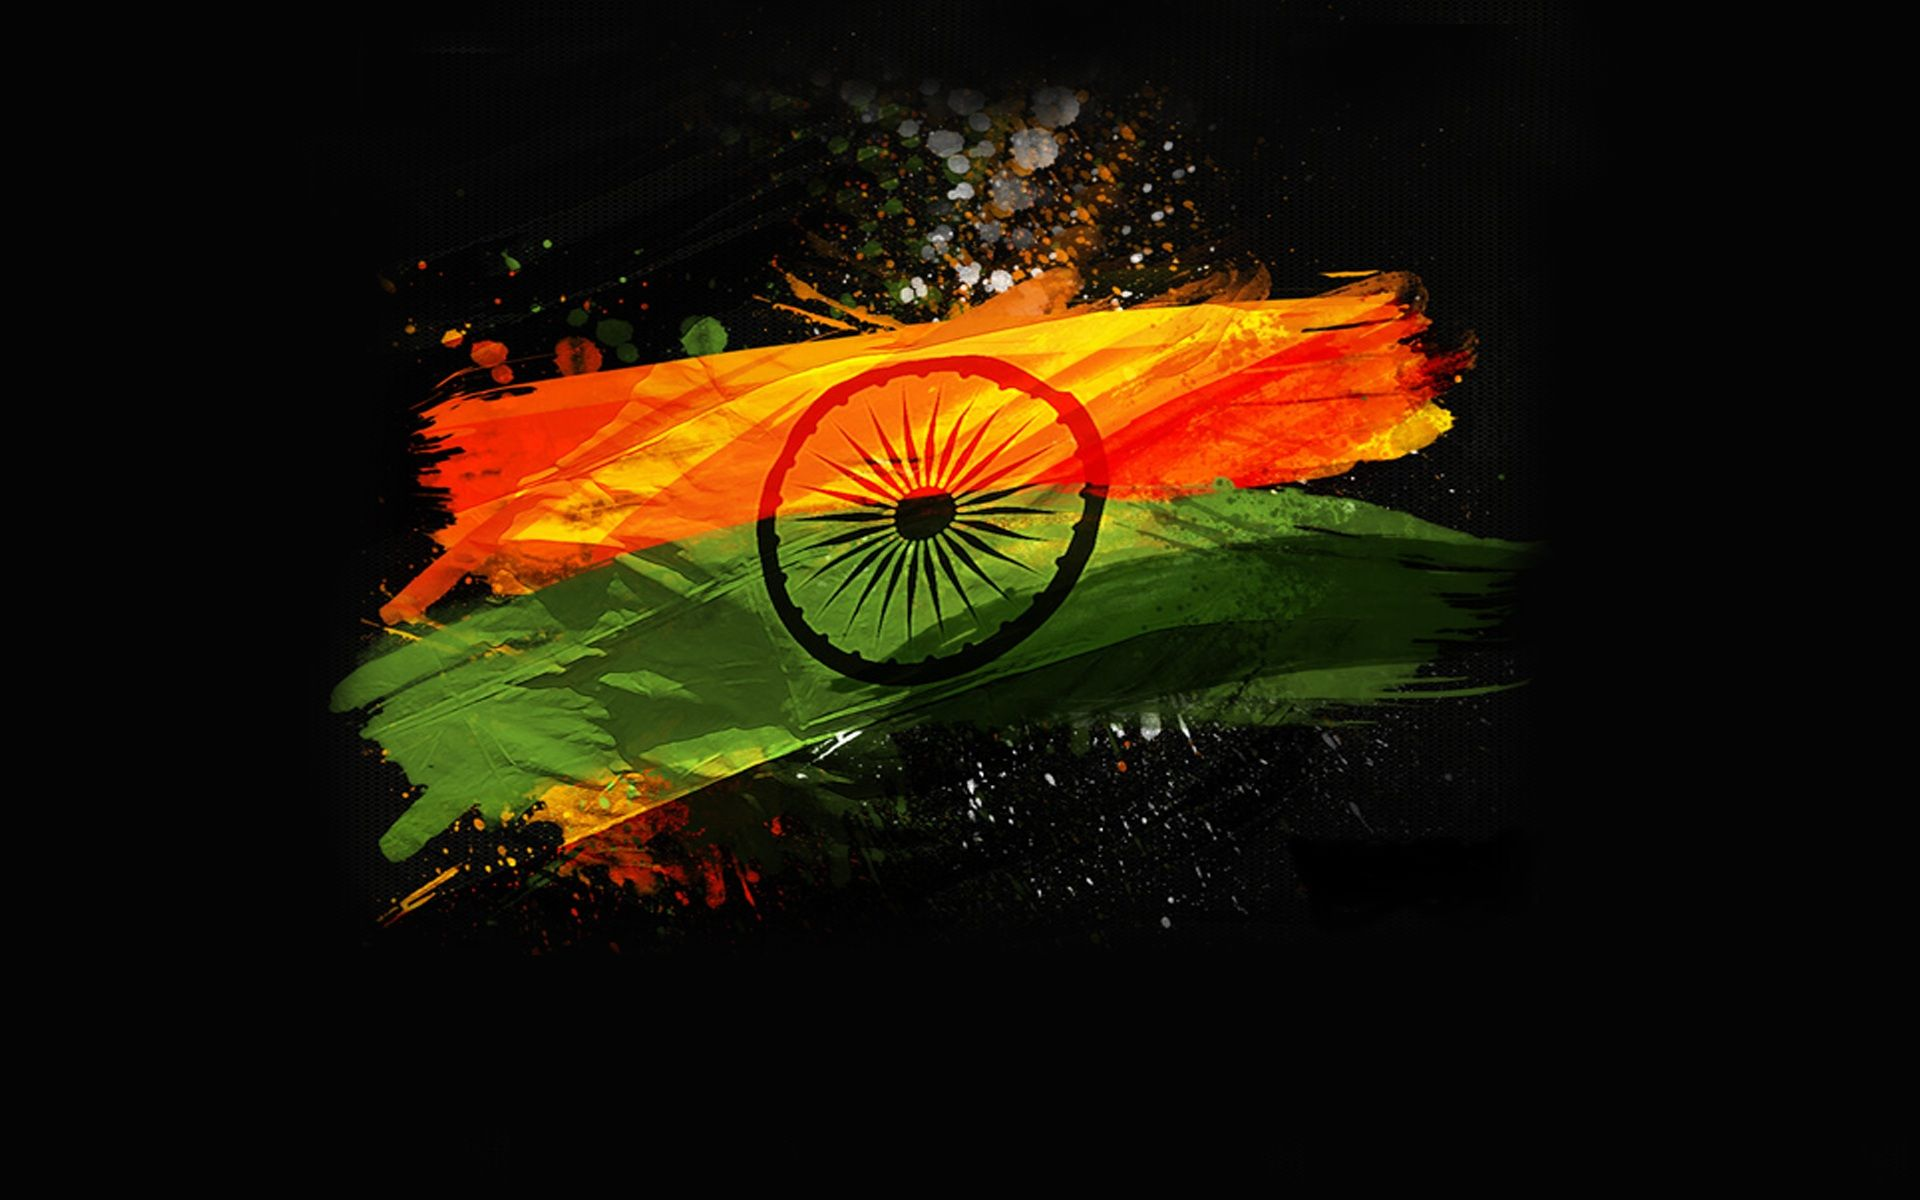 Indian Army Wallpapers 3d Archives Hd Wallpapers Buzz Happy Independence Day India Happy Independence Day Images Independence Day Images